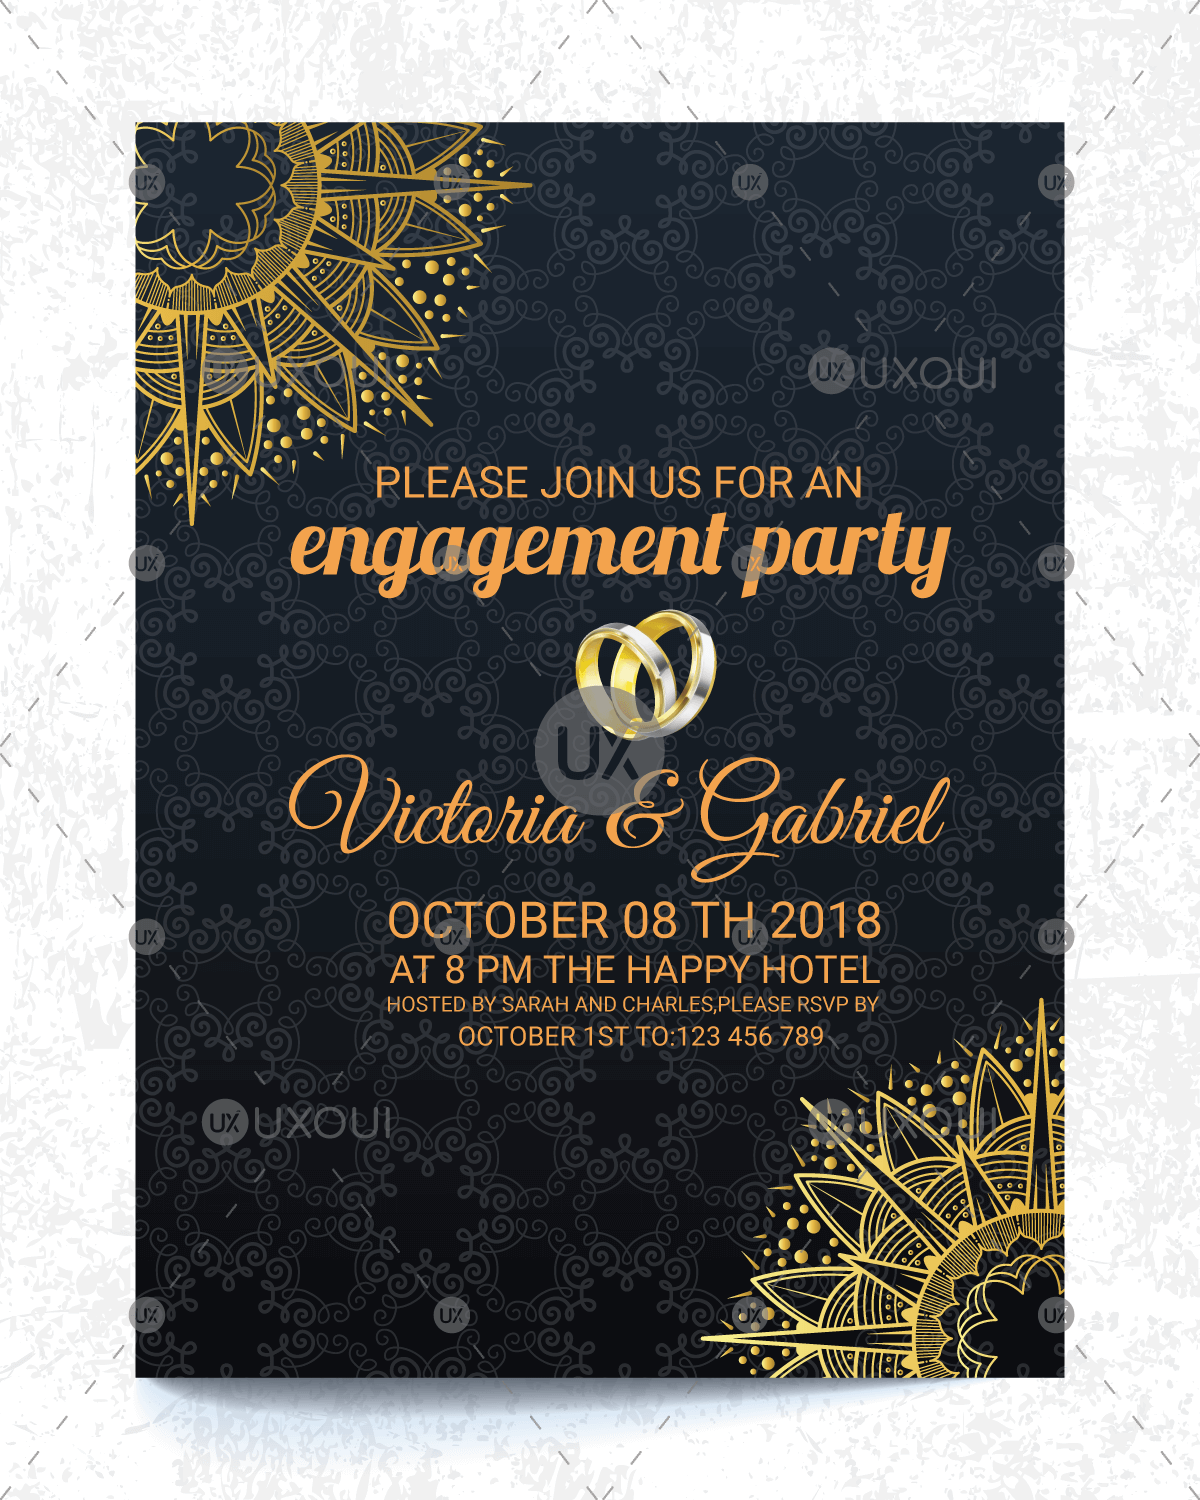 Nice Wedding Engagement Invitation Card Design Vector In Vintage Style Uxoui